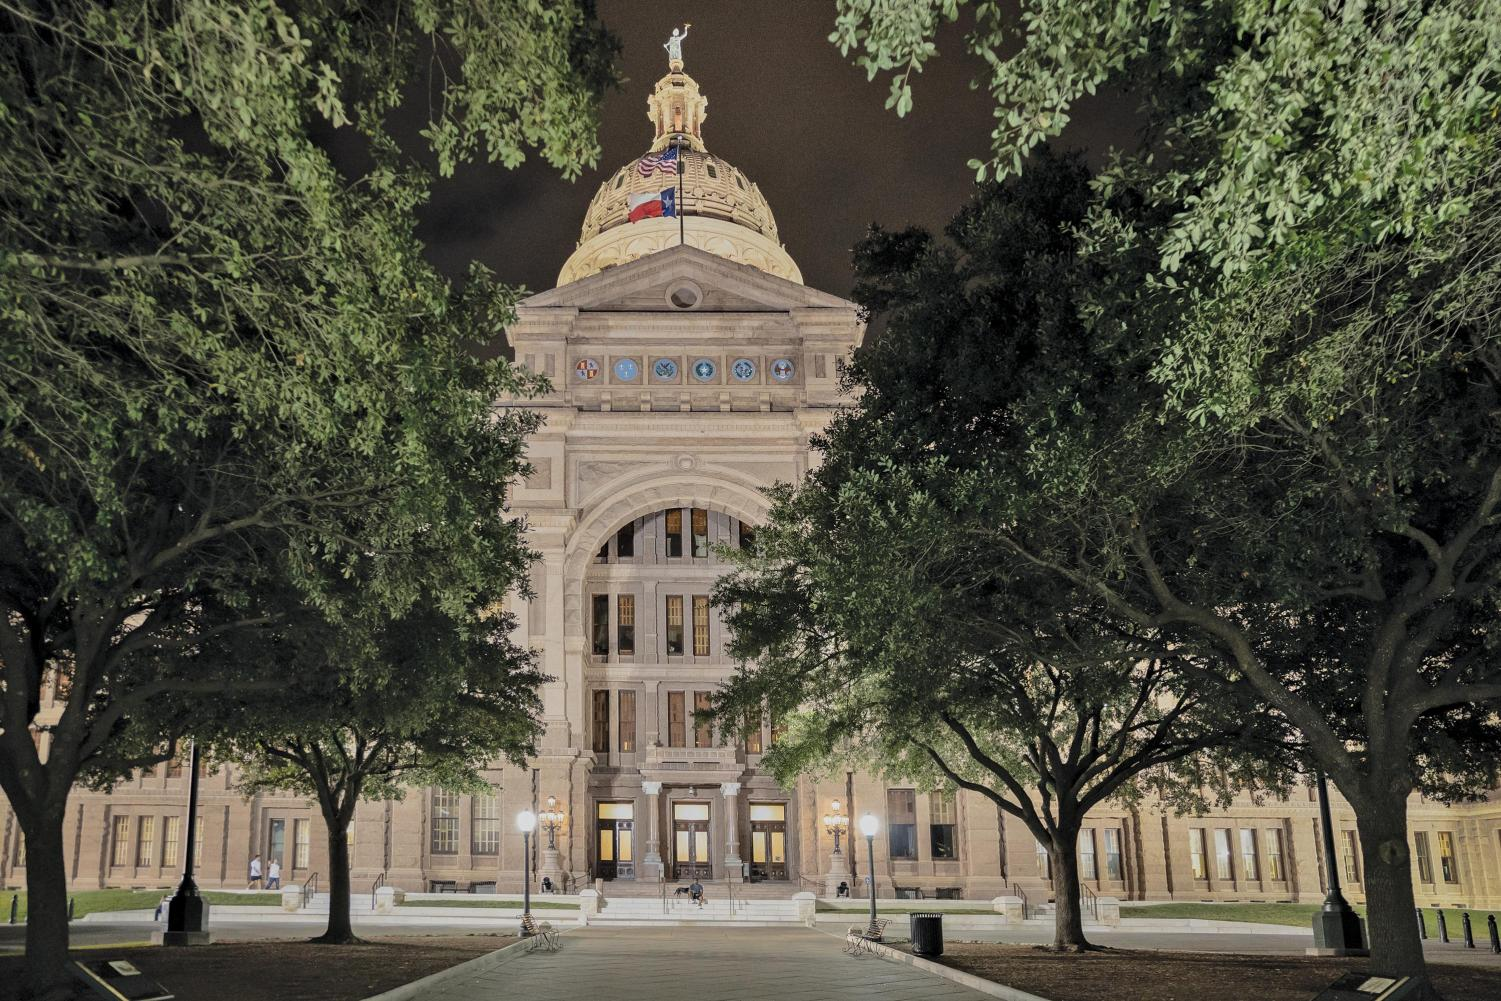 Texas House Speaker Dennis Bonnen was planning on running for re-election before the scandal unfolded. He is now stepping down from the election after backlash from his recent comments. Bonnen has been in office as a state representative since 1997, three years after graduating from St. Edward's.